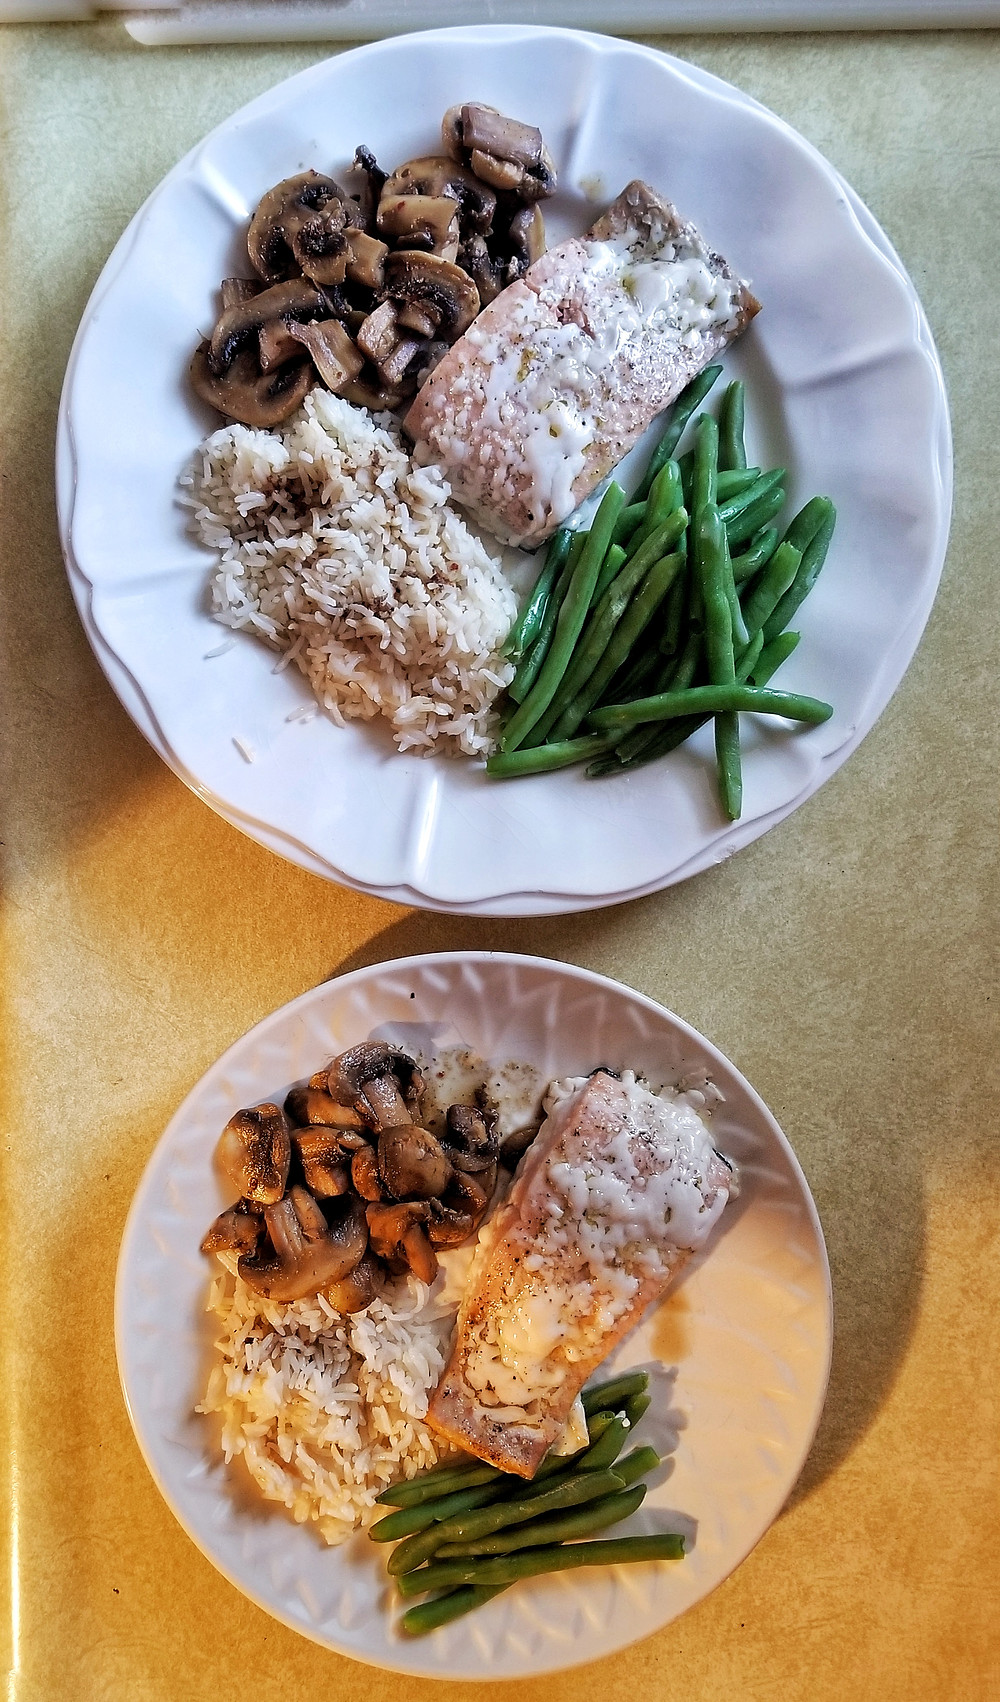 Two plates featuring salmon, mushrooms, green beans, and rice.